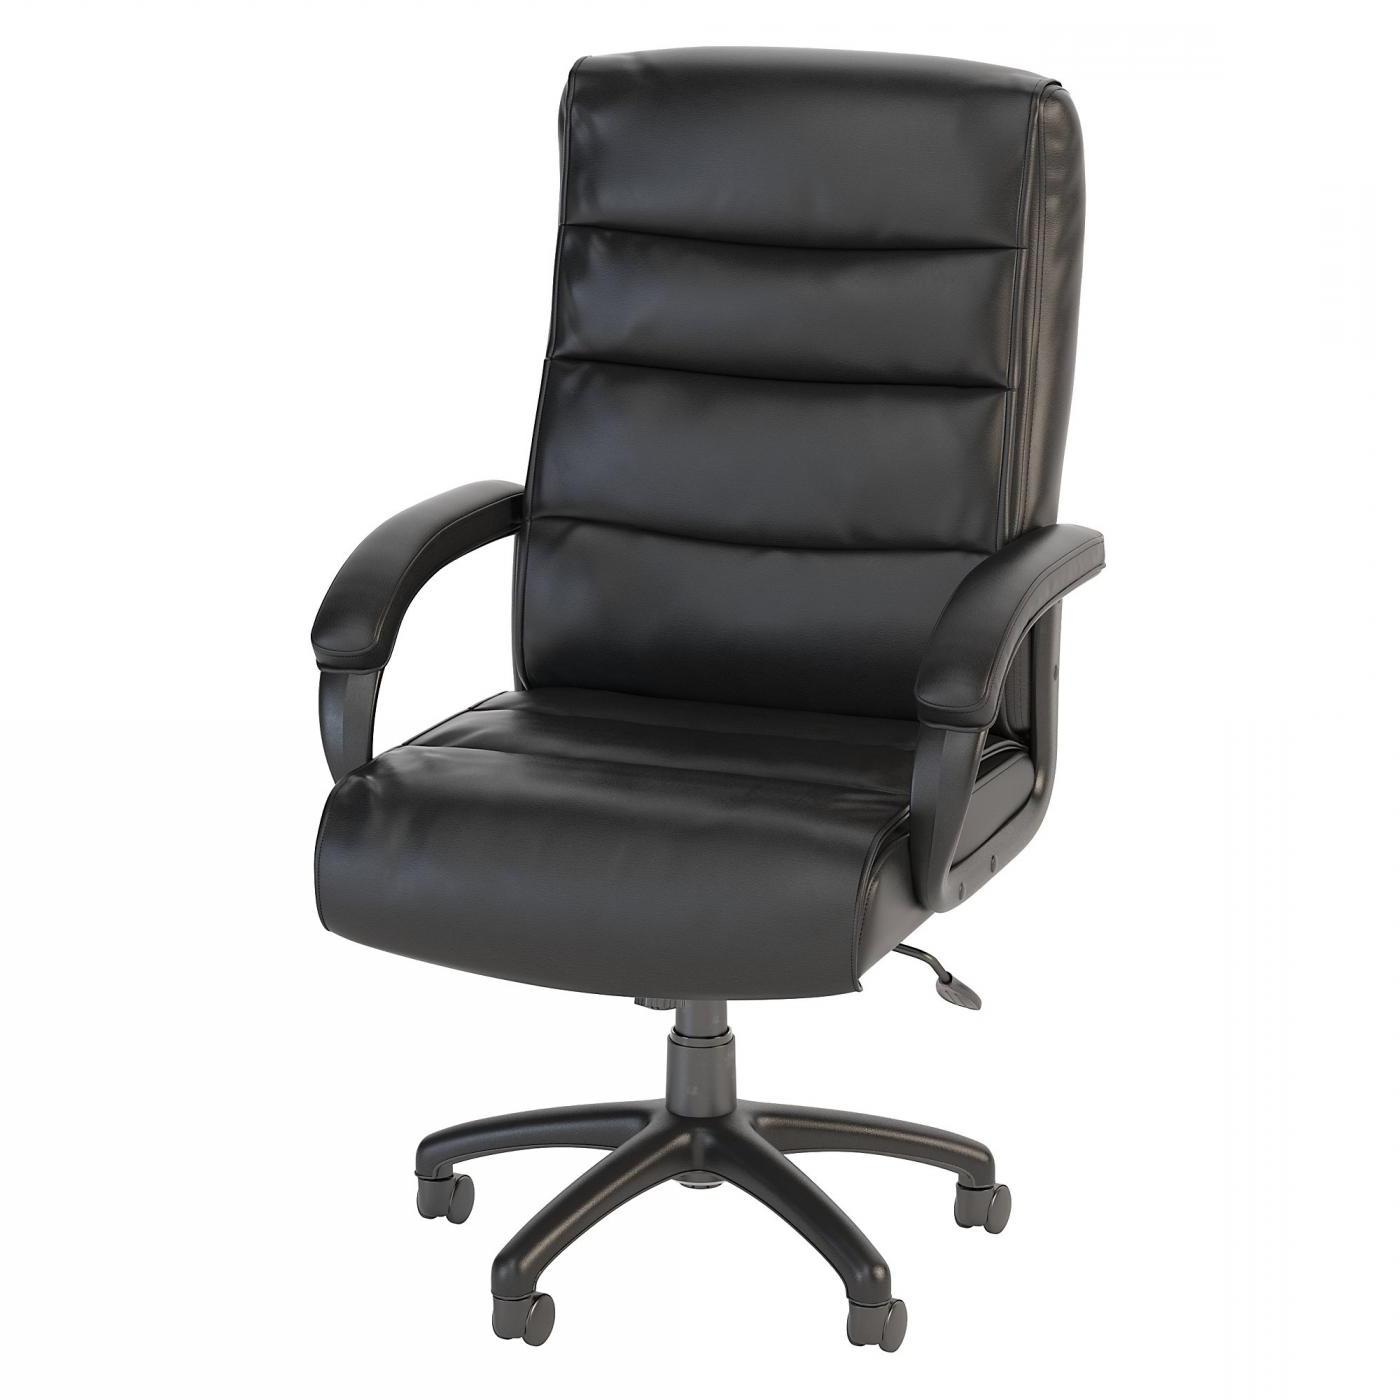 <font color=#c60><b>BUSH BUSINESS FURNITURE SOFT SENSE HIGH BACK LEATHER EXECUTIVE OFFICE CHAIR. FREE SHIPPING</font></b> </font></b></font></b>